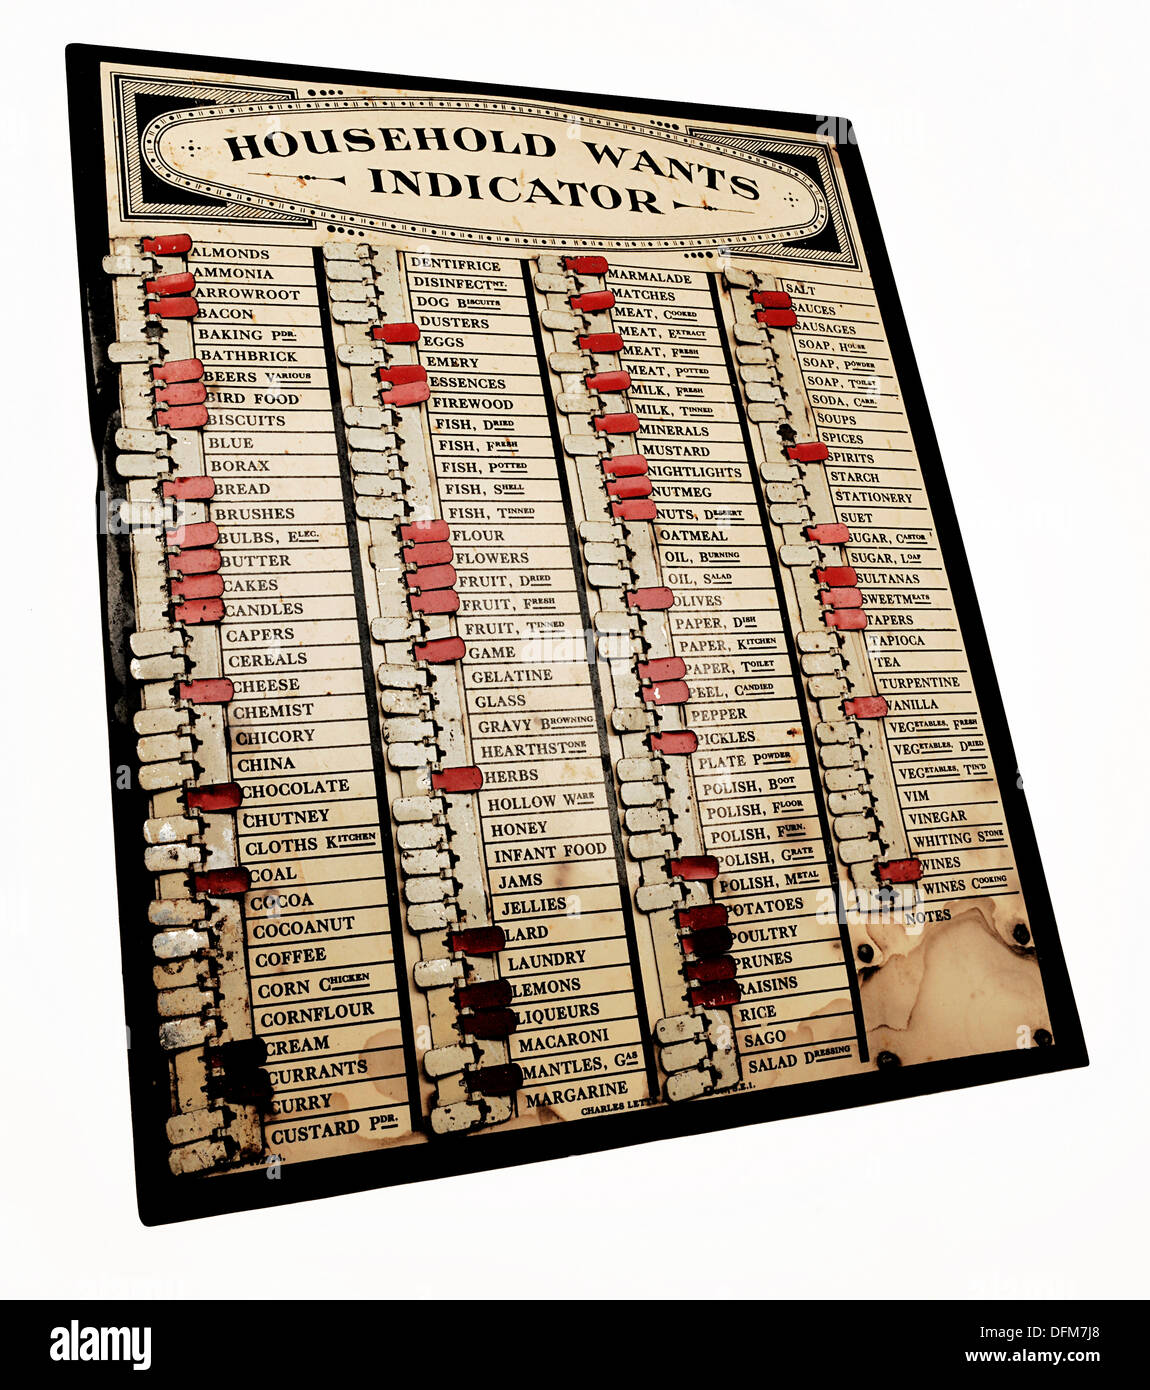 Household Wants Indicator, from Bruton Museum, Somerset. - Stock Image